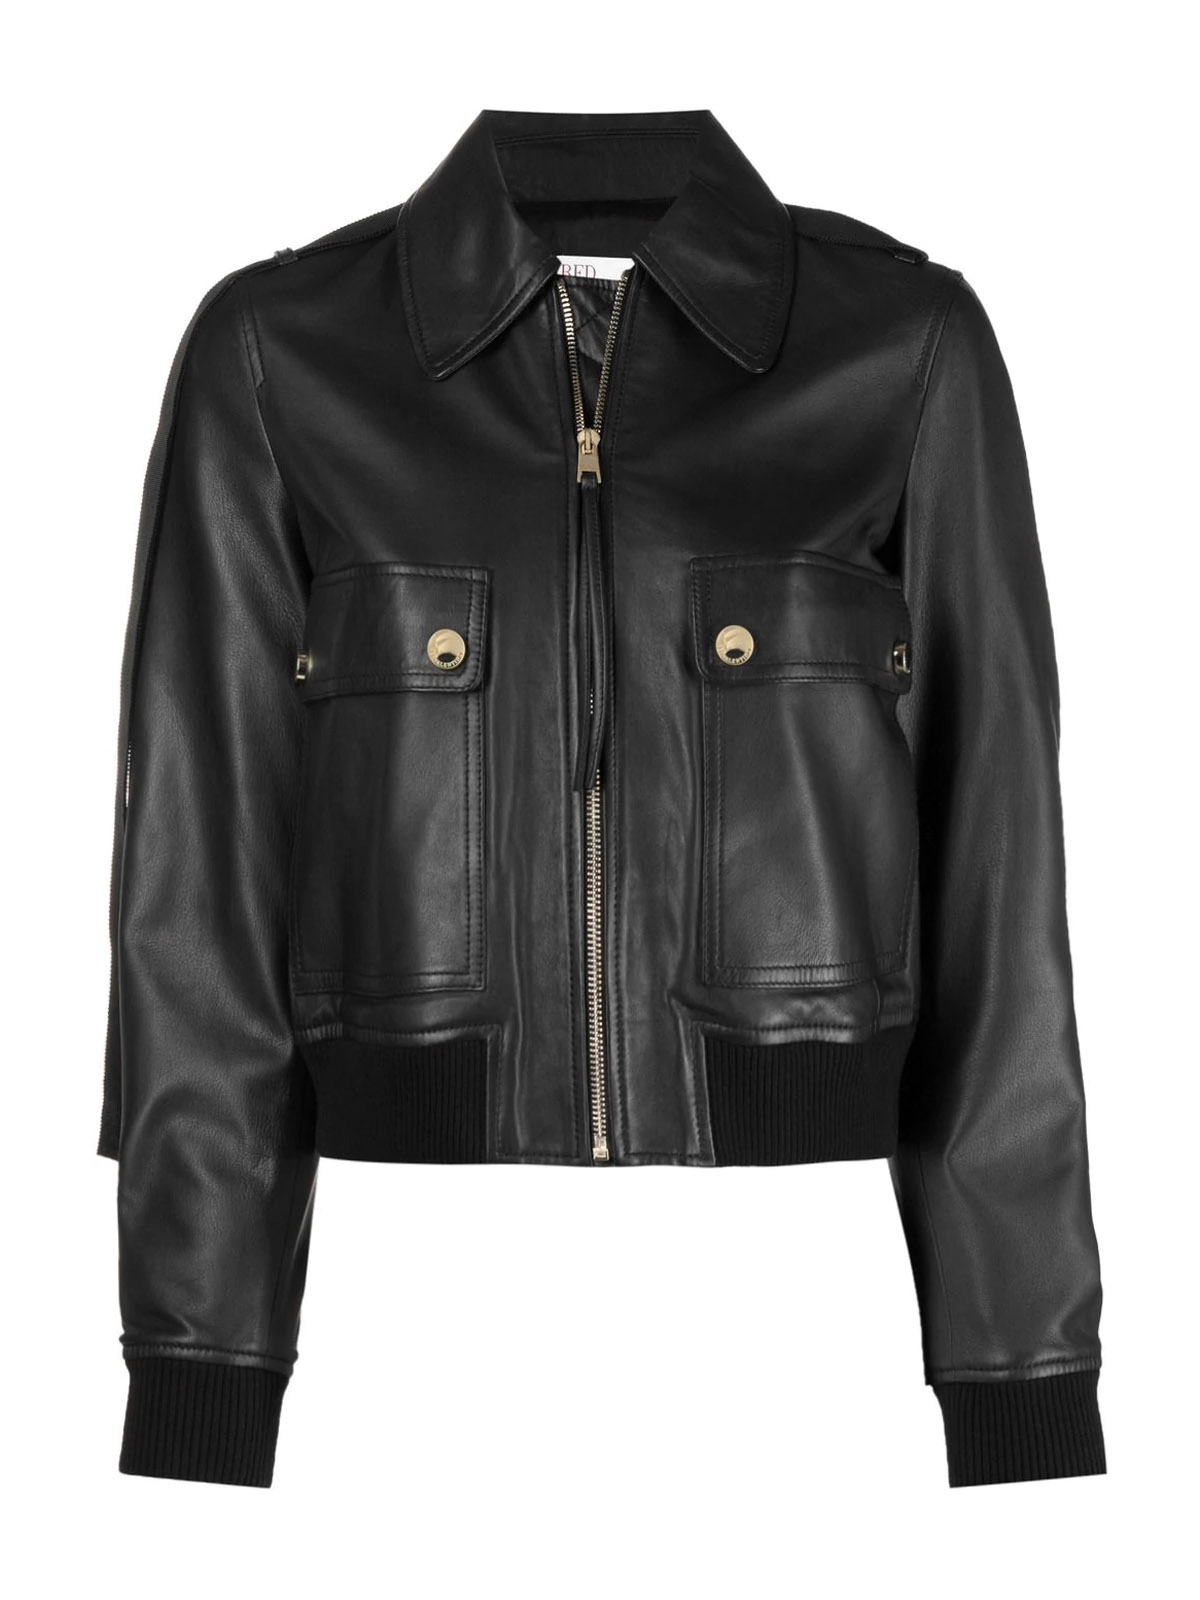 Red Valentino Leathers LEATHER JACKET NAPPA AGNELLO